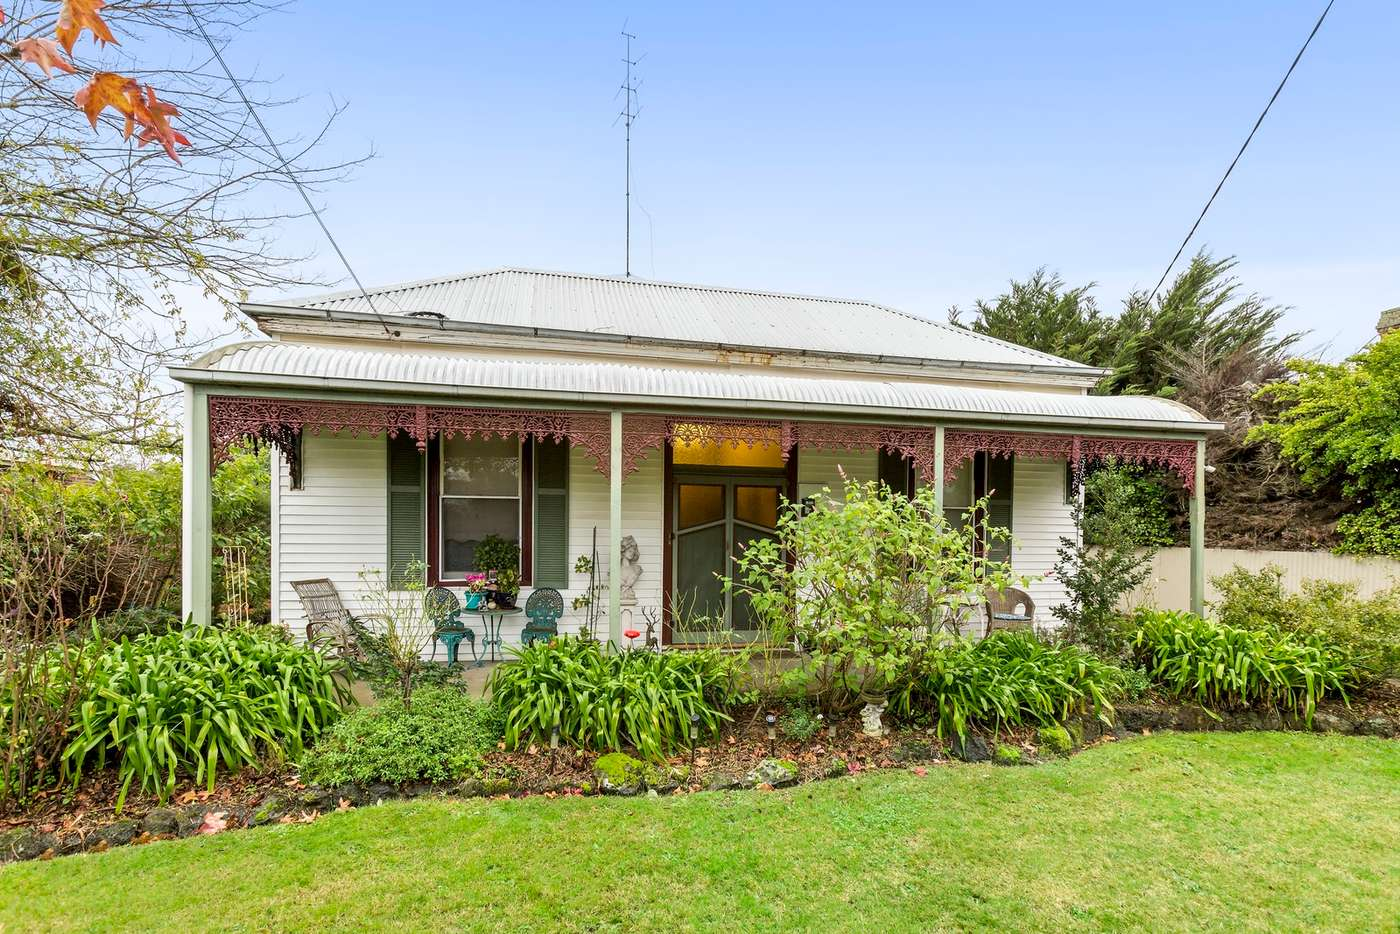 Main view of Homely house listing, 155 Hearn Street, Colac VIC 3250